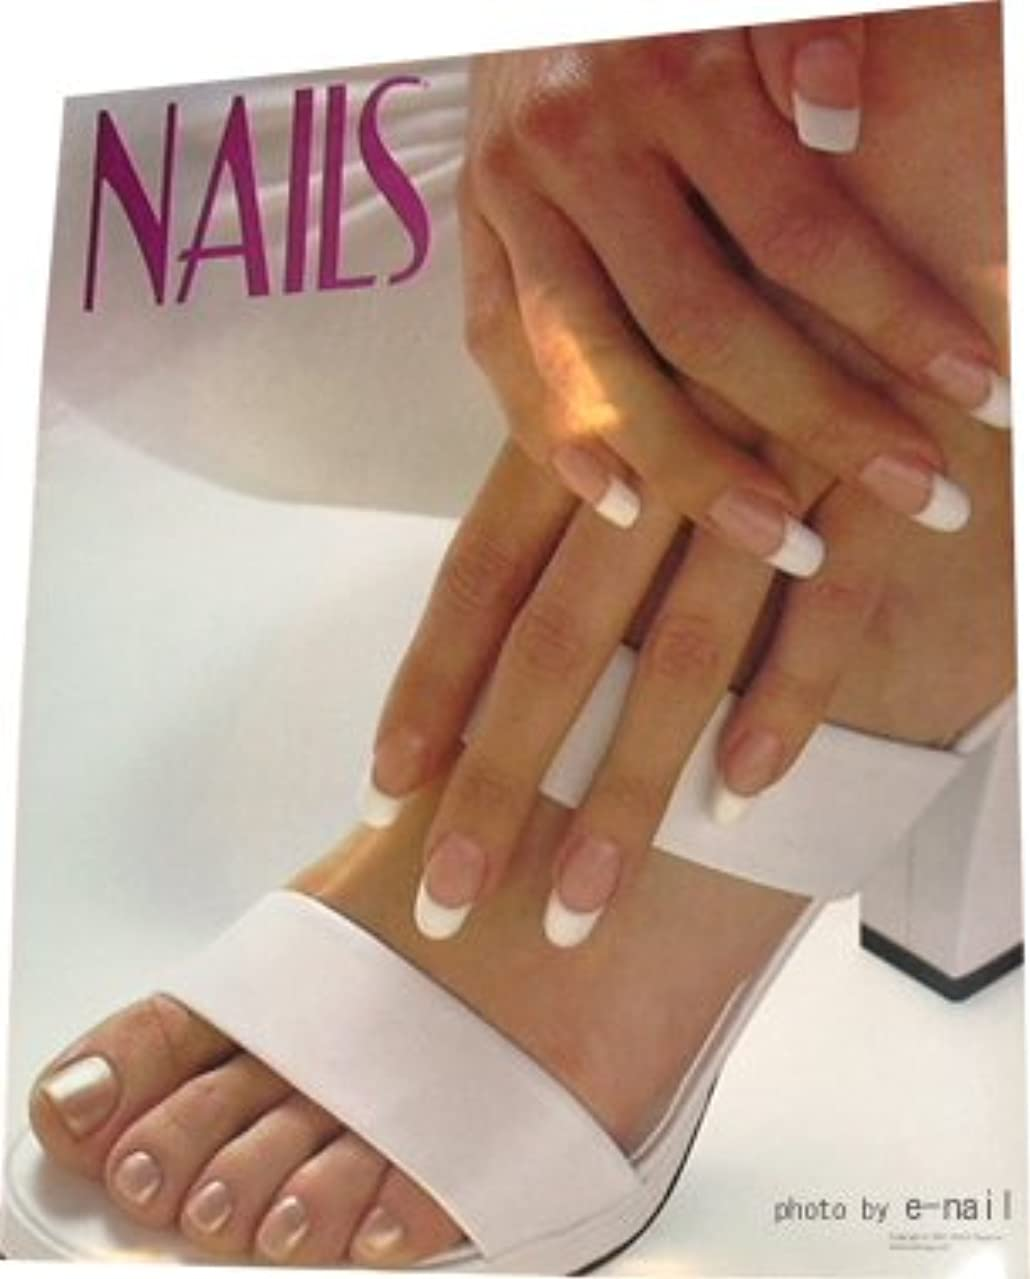 縫うマラドロイトシフトNAILS ポスター 【French Manicure and Pedicure in Heels】